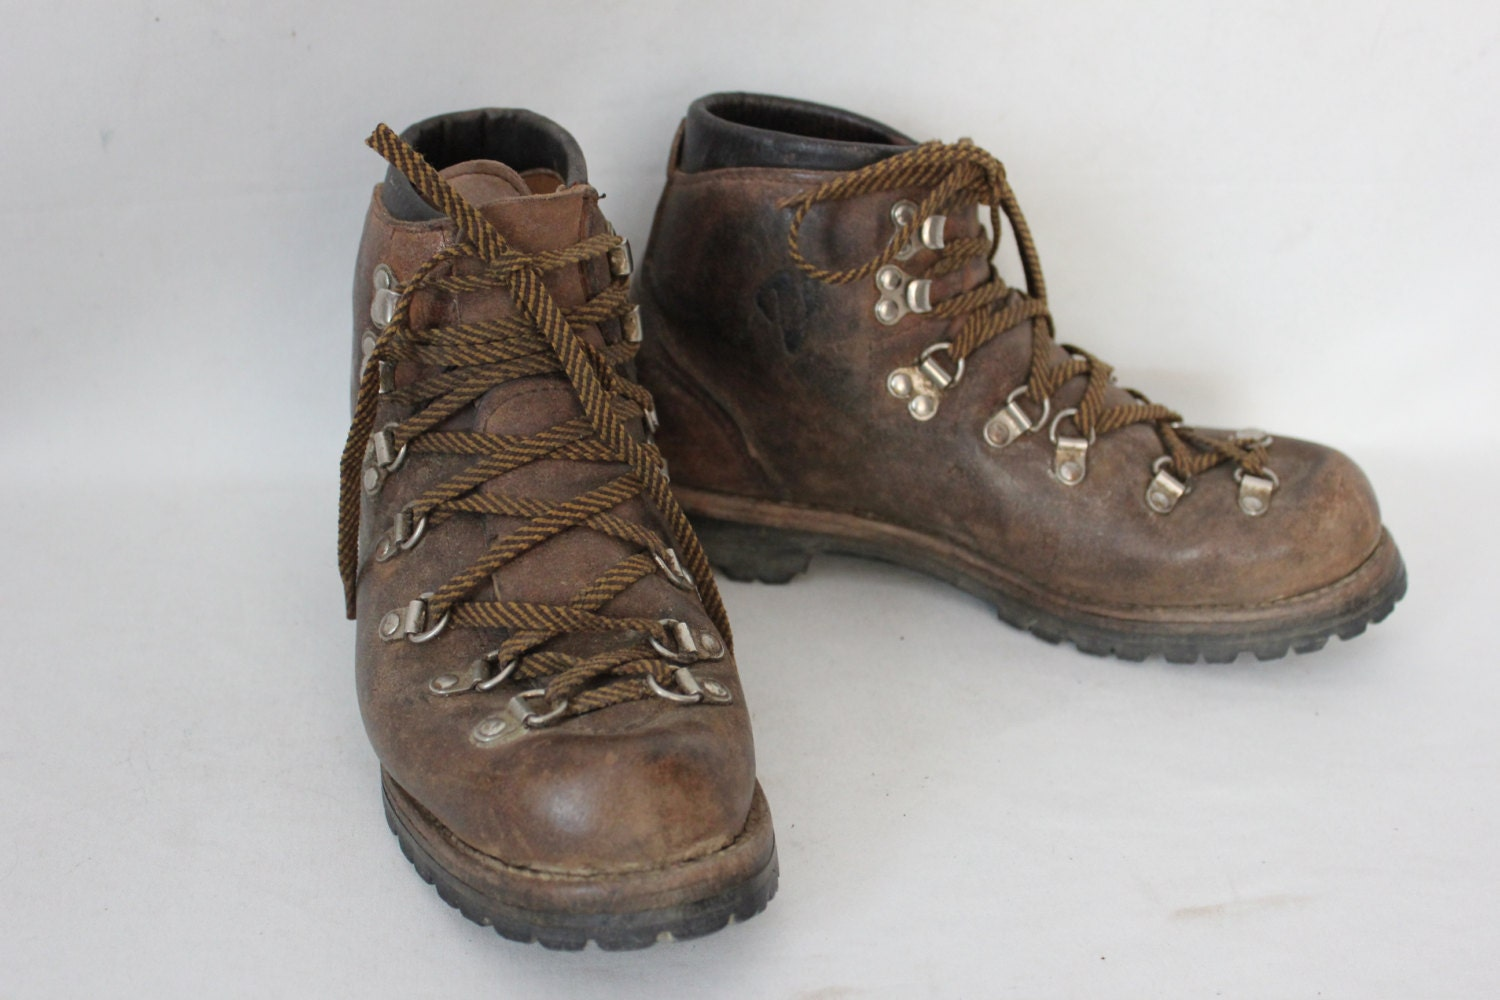 vintage vasque hiking boots womens size 8 mens size 6. Black Bedroom Furniture Sets. Home Design Ideas